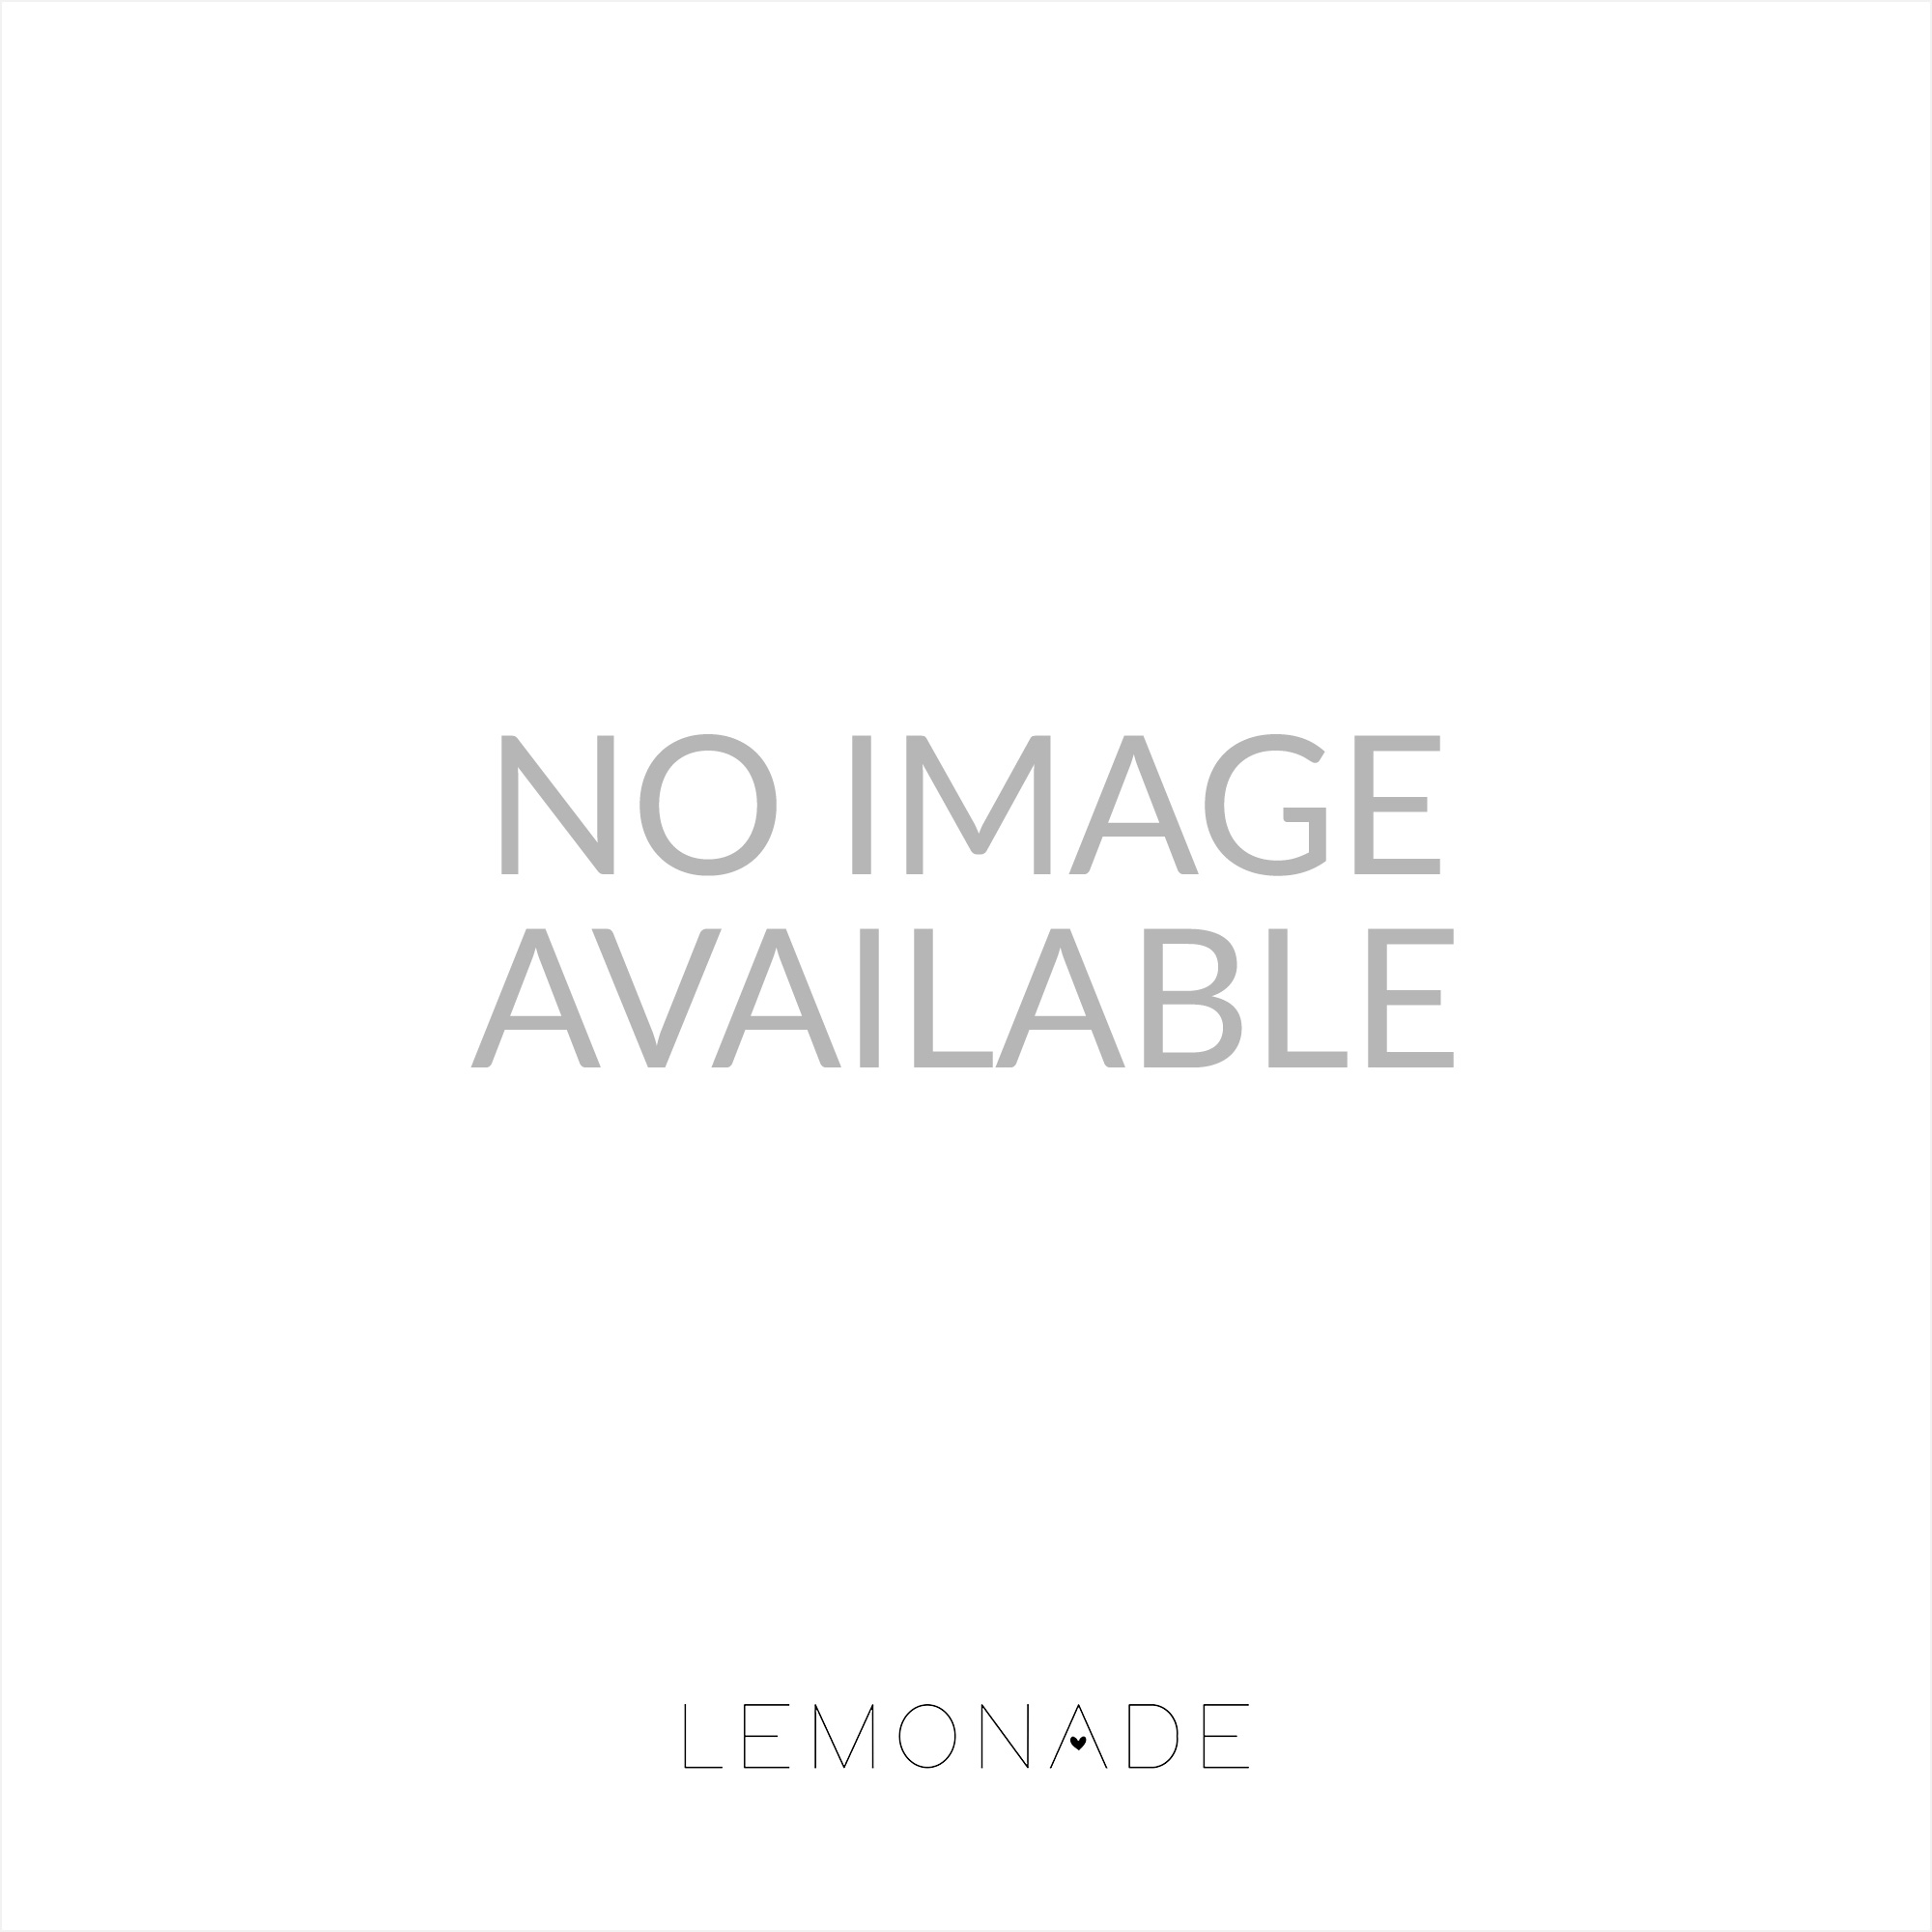 Lemonade Flaming Hot Glitter Lips Set of 4 kit